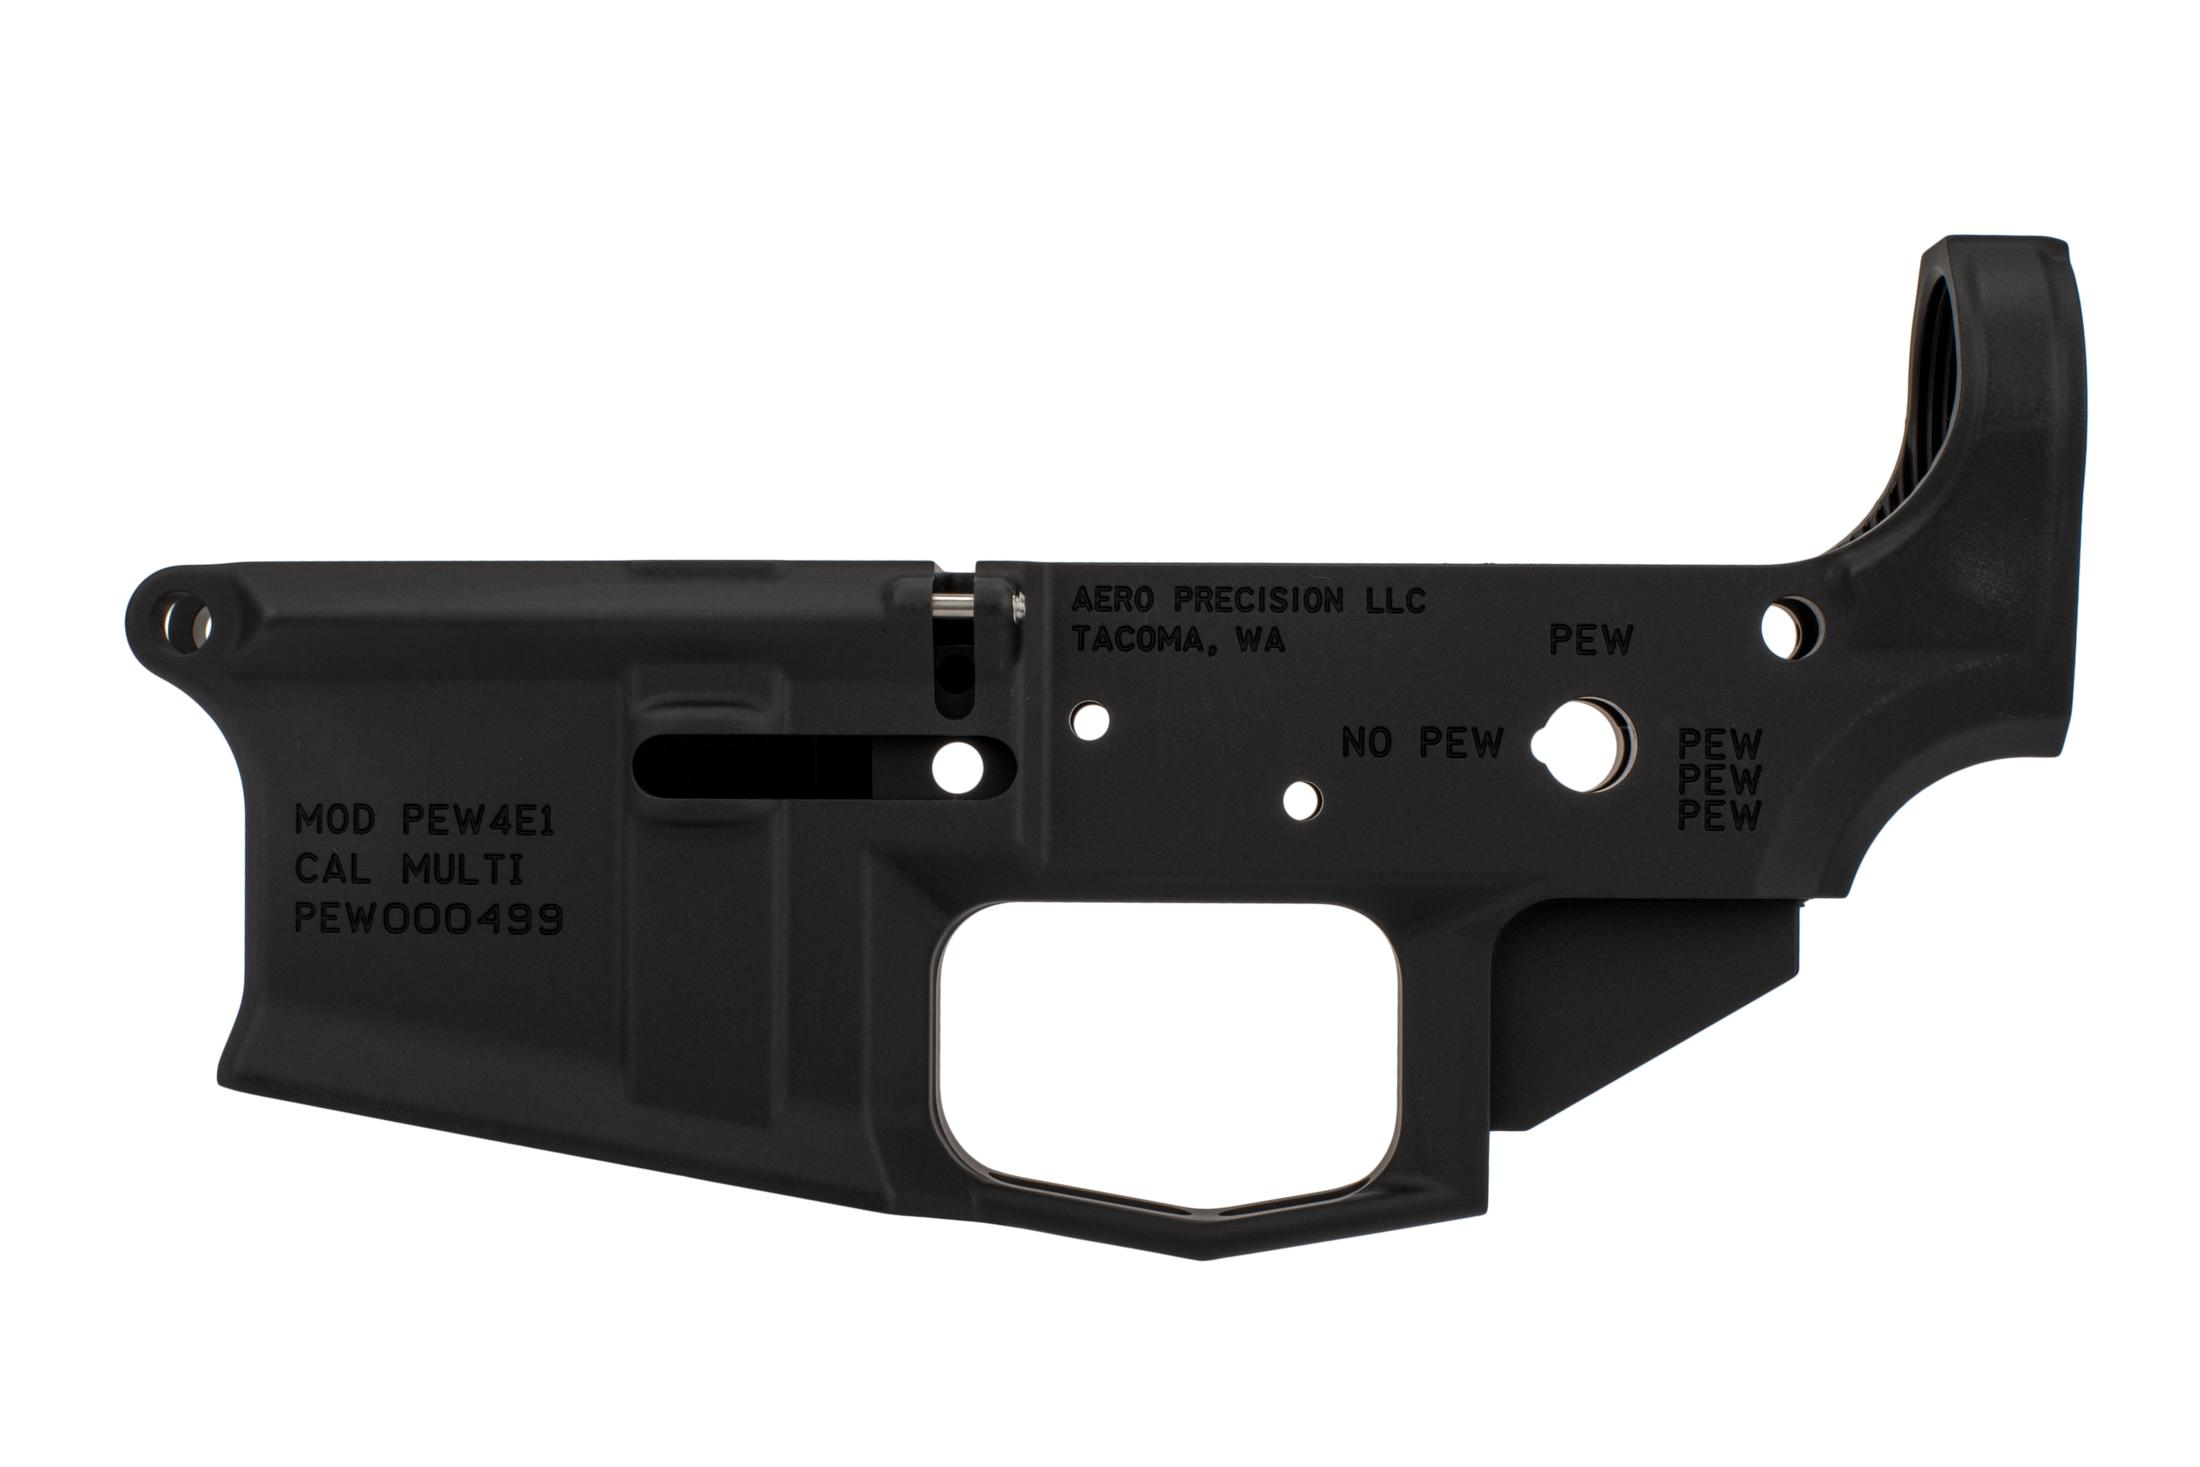 The Aero Stripped lower M4E1 features an integral skeletonized trigger guard